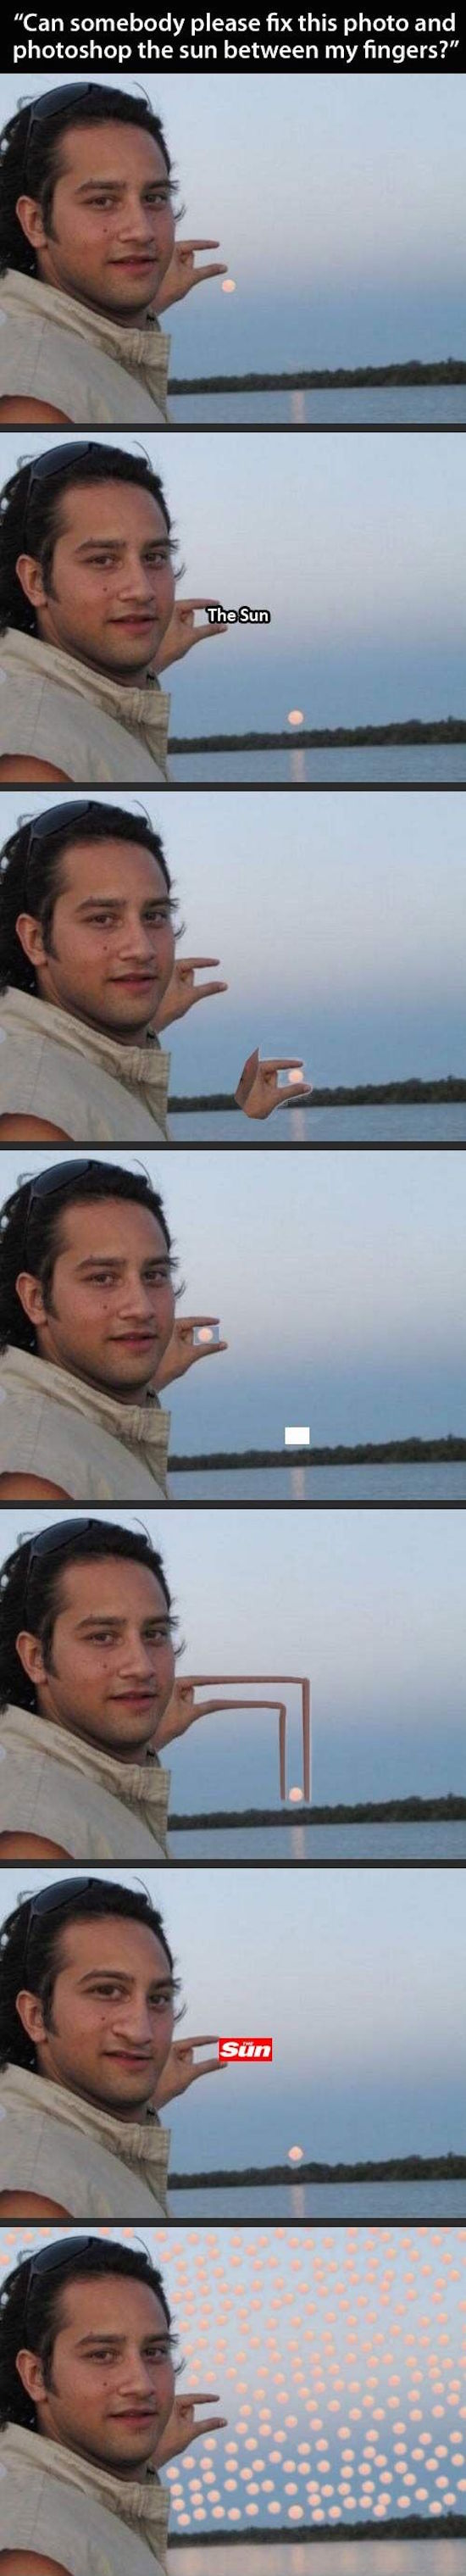 funny pictures of photoshop prank sun between fingers